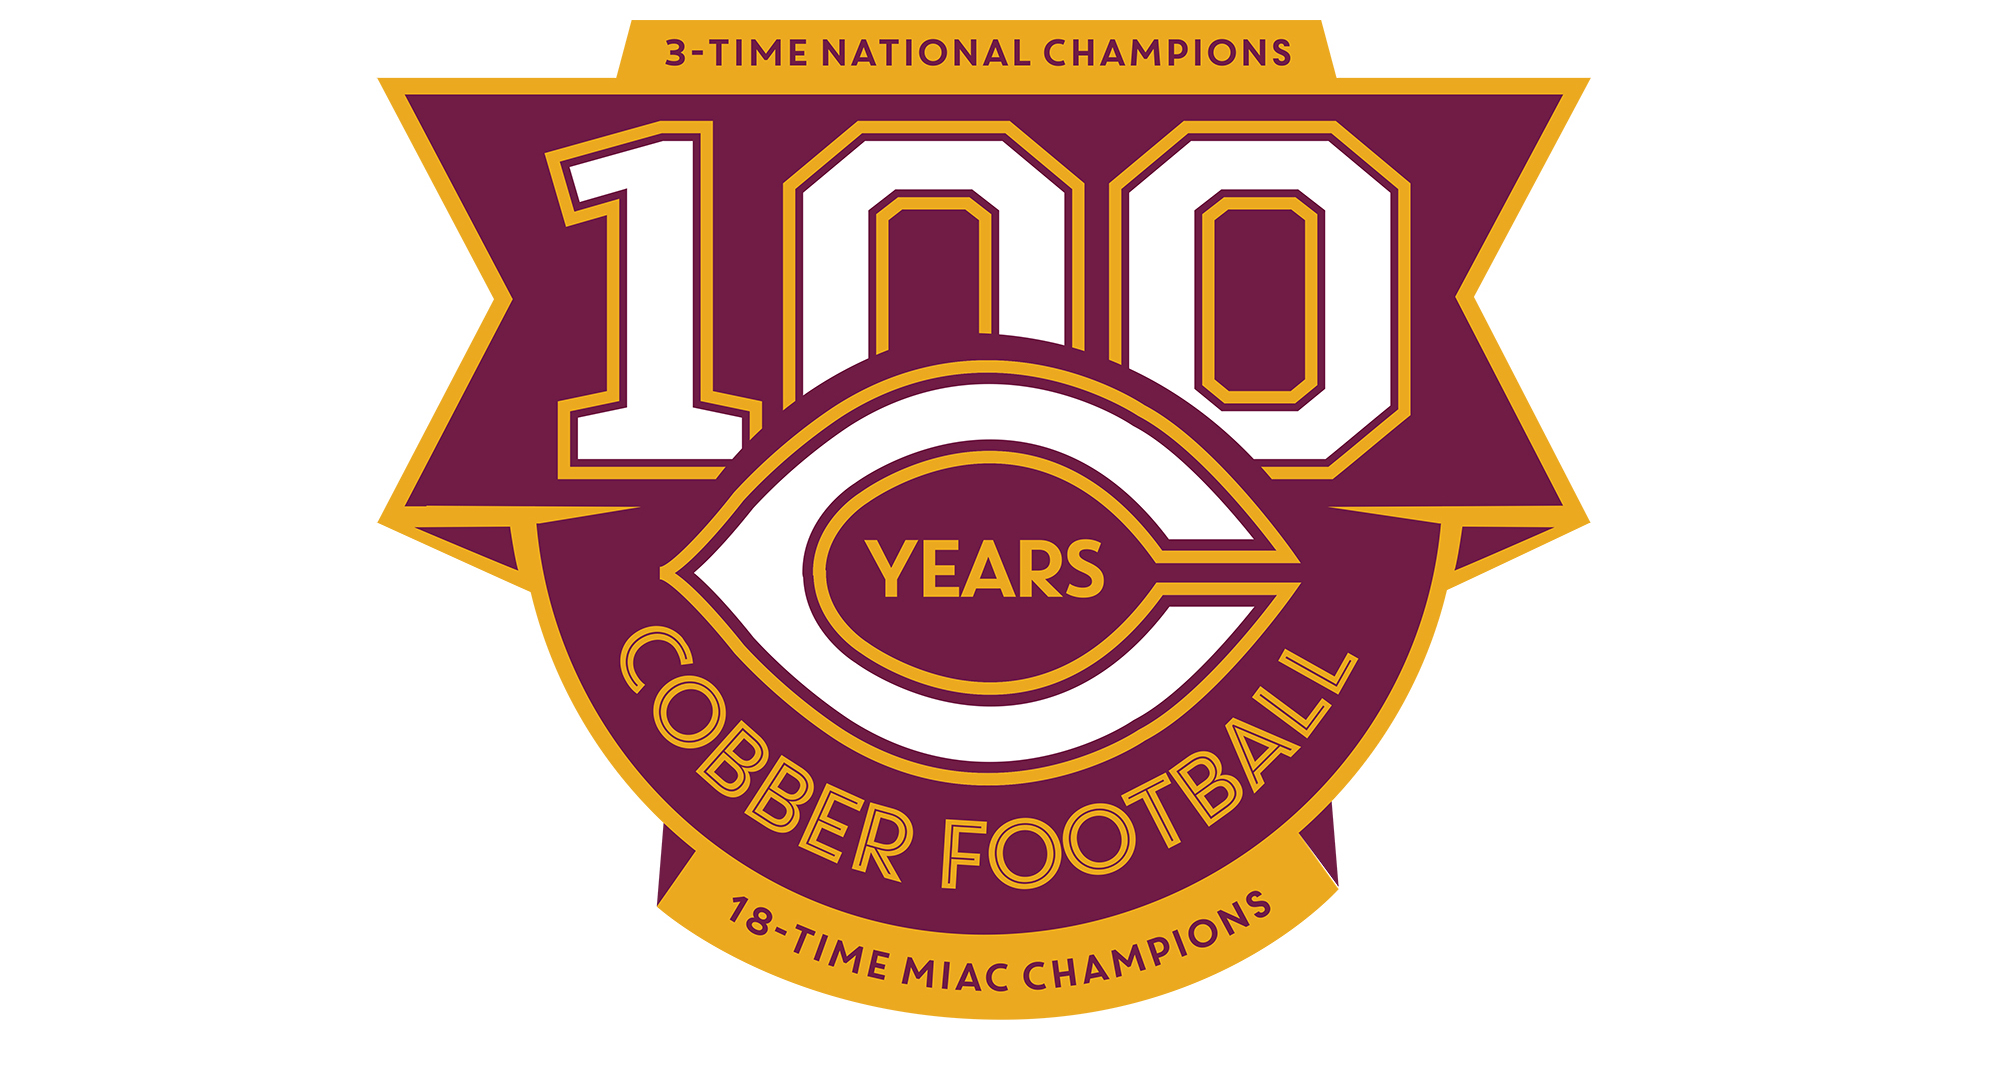 100th Year Of Cobber Football